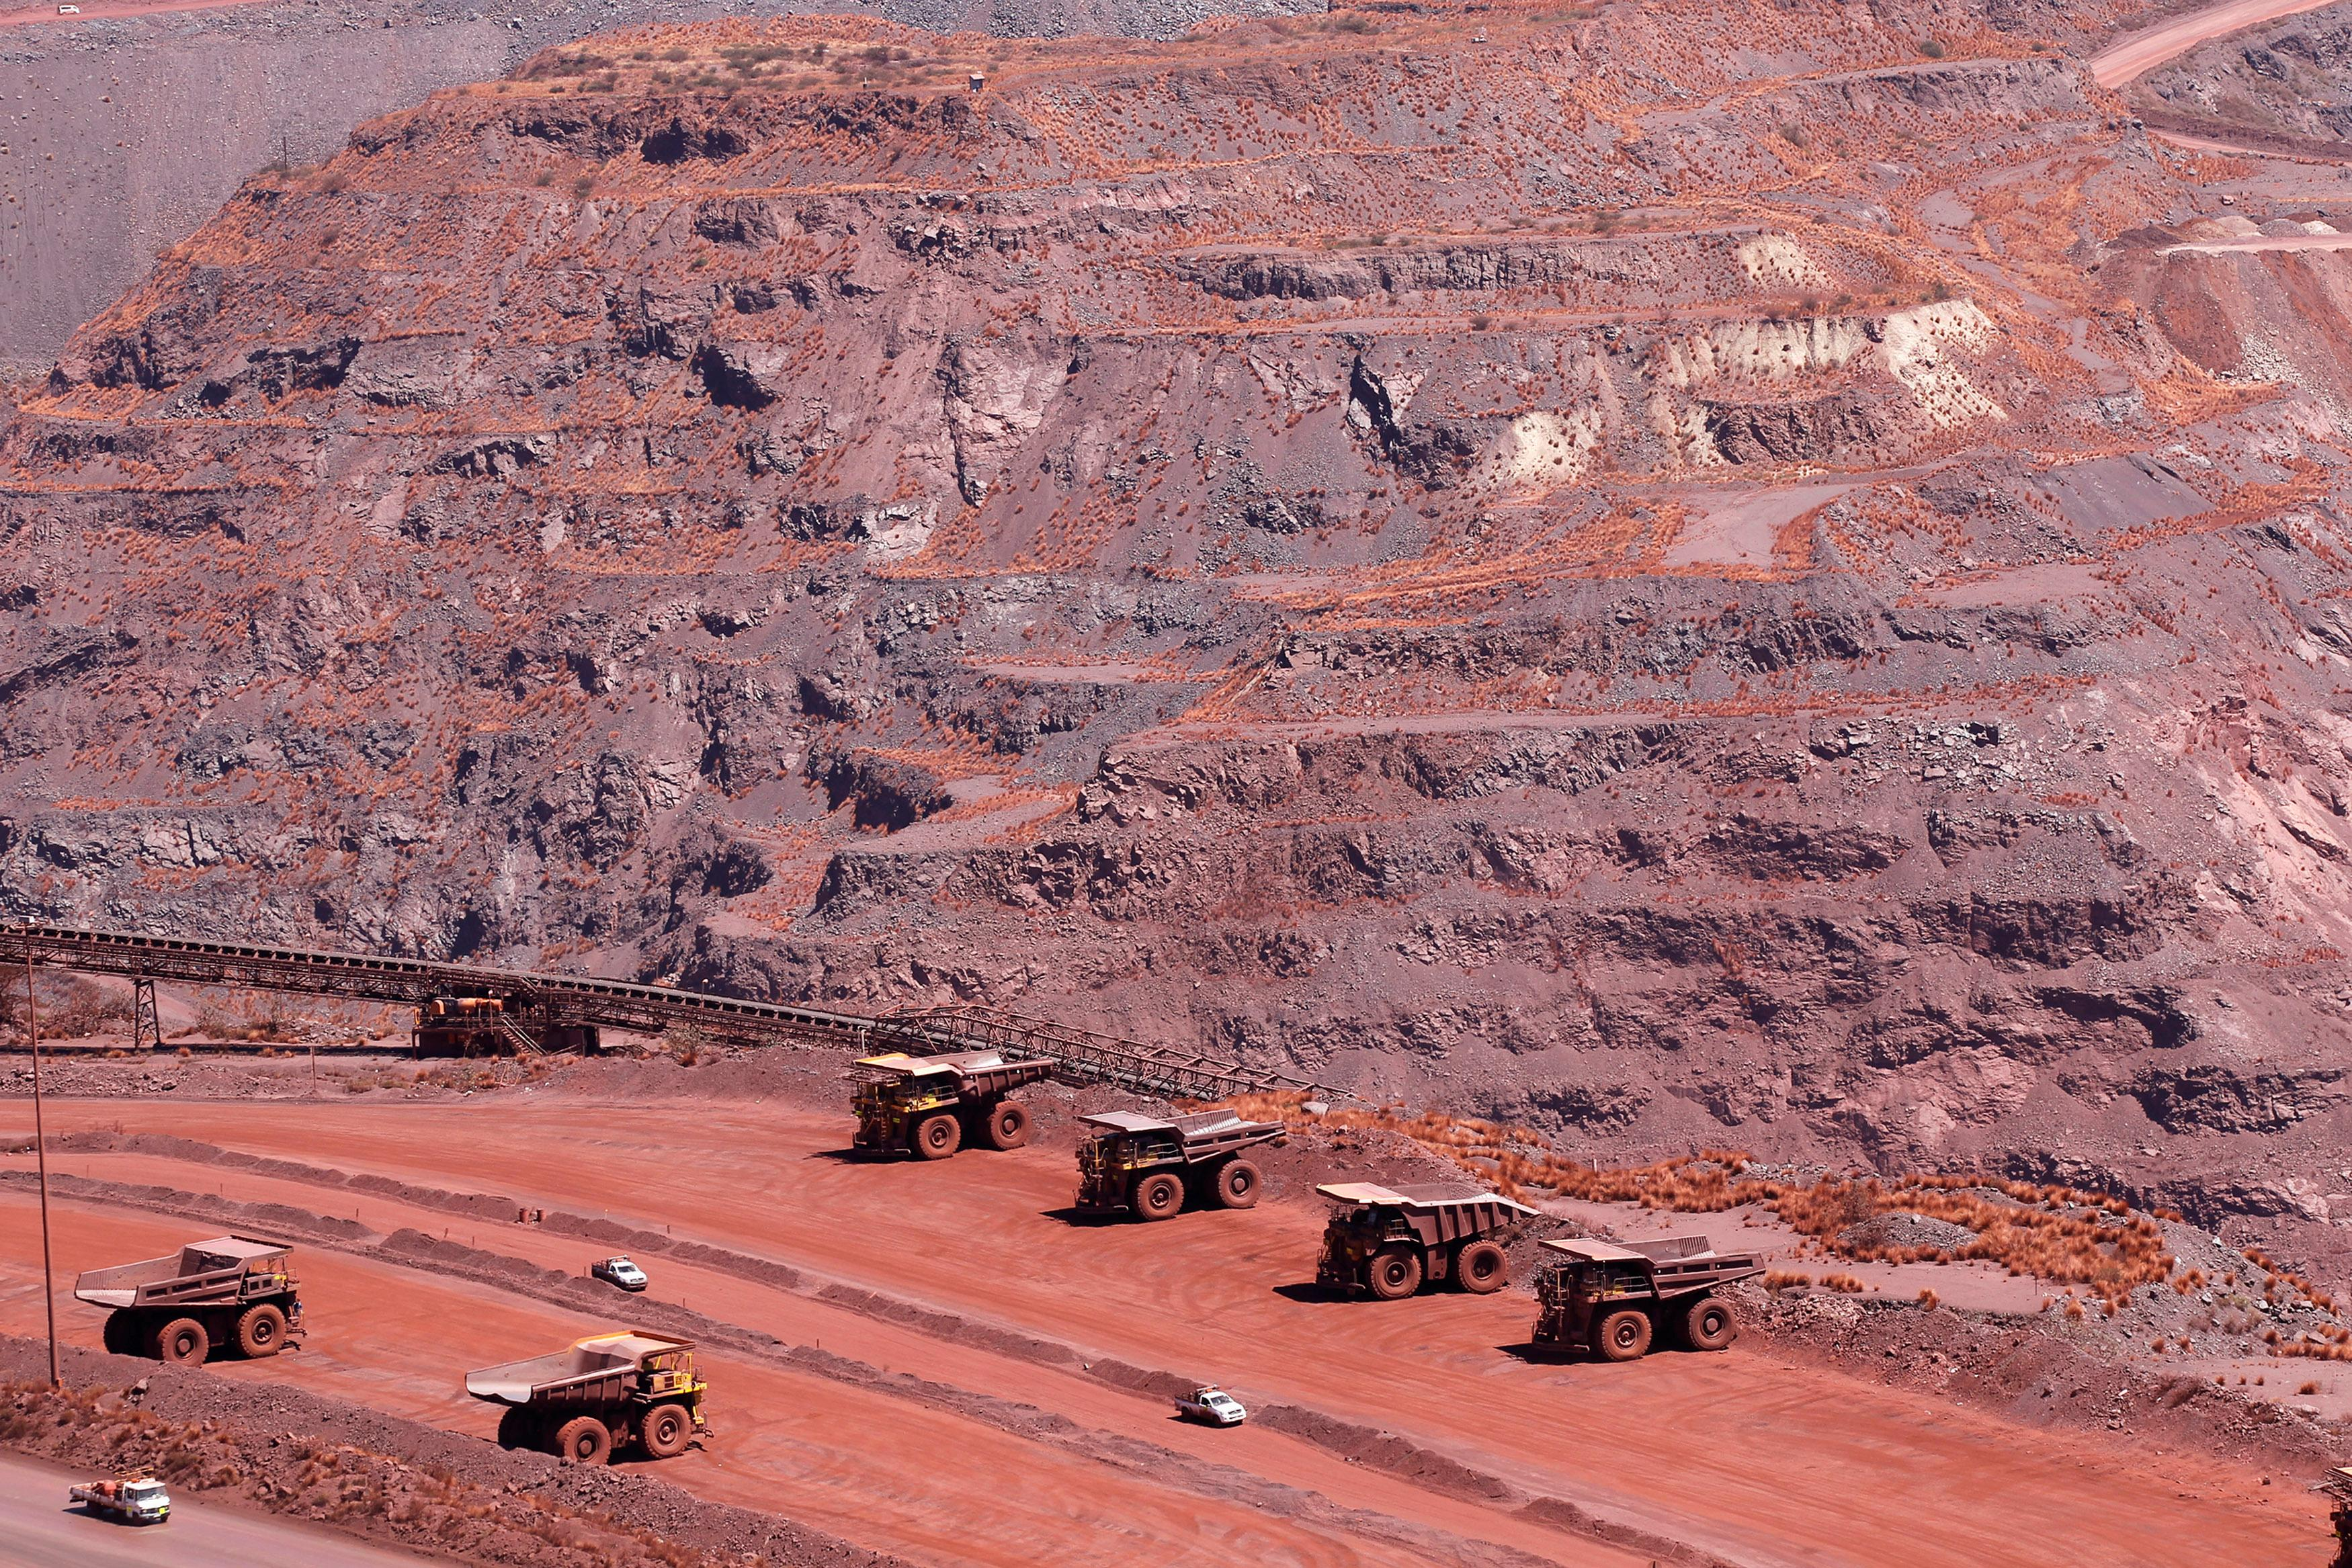 Column: Iron ore's balloon is popped, but prices may have deflated too much